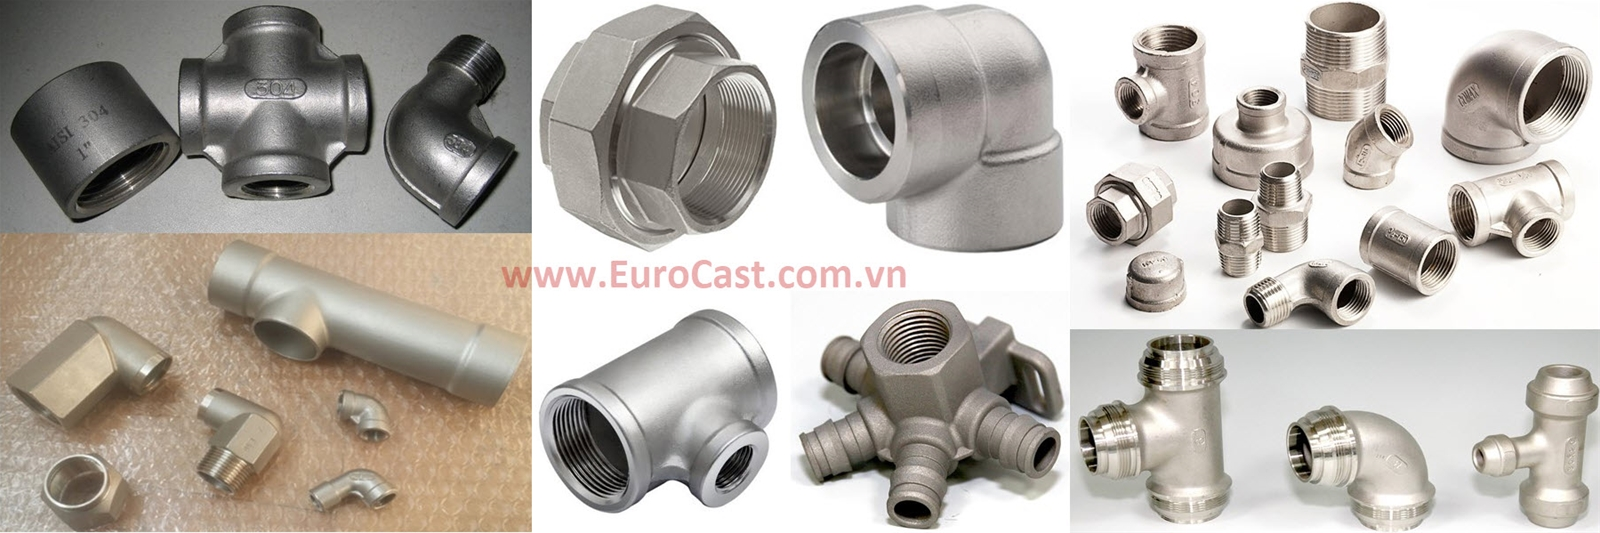 Stainless steel spare parts for pipe system